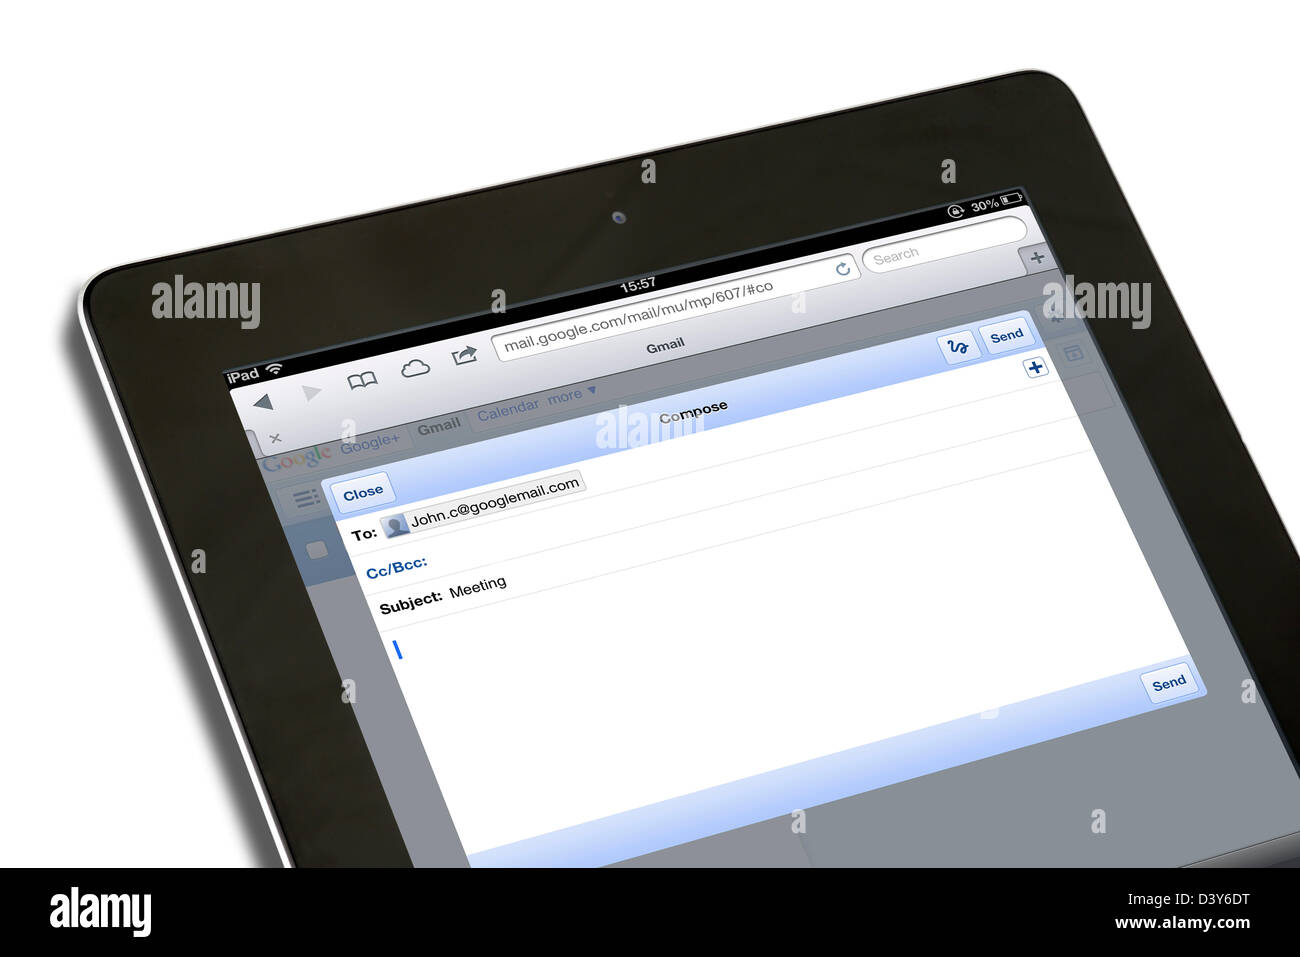 Composing an email with Google Gmail account on a 4th generation iPad, UK - Stock Image